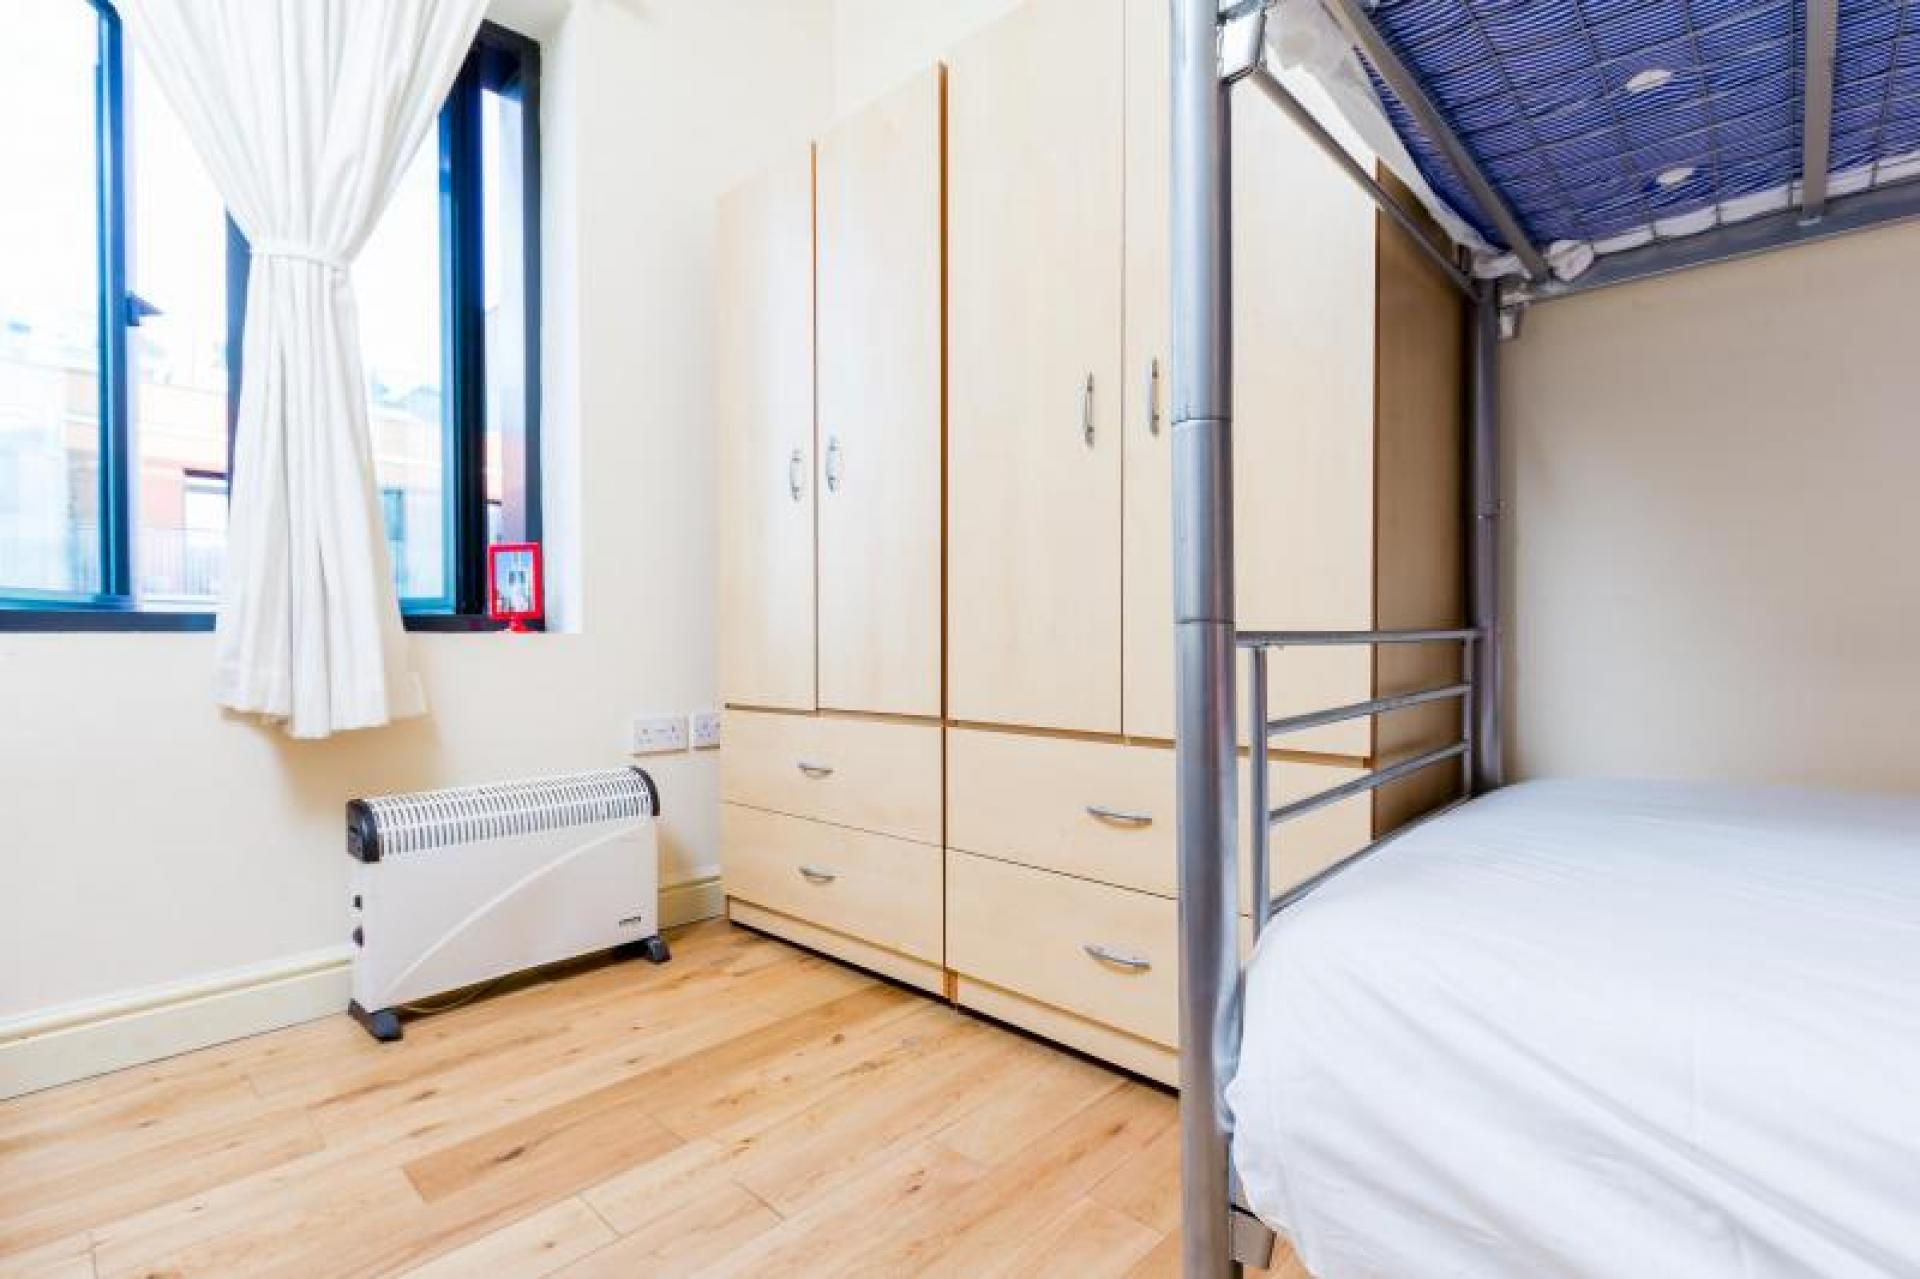 Bunk bed for sale in uk 200 second hand bunk beds for Bunk beds for sale under 200